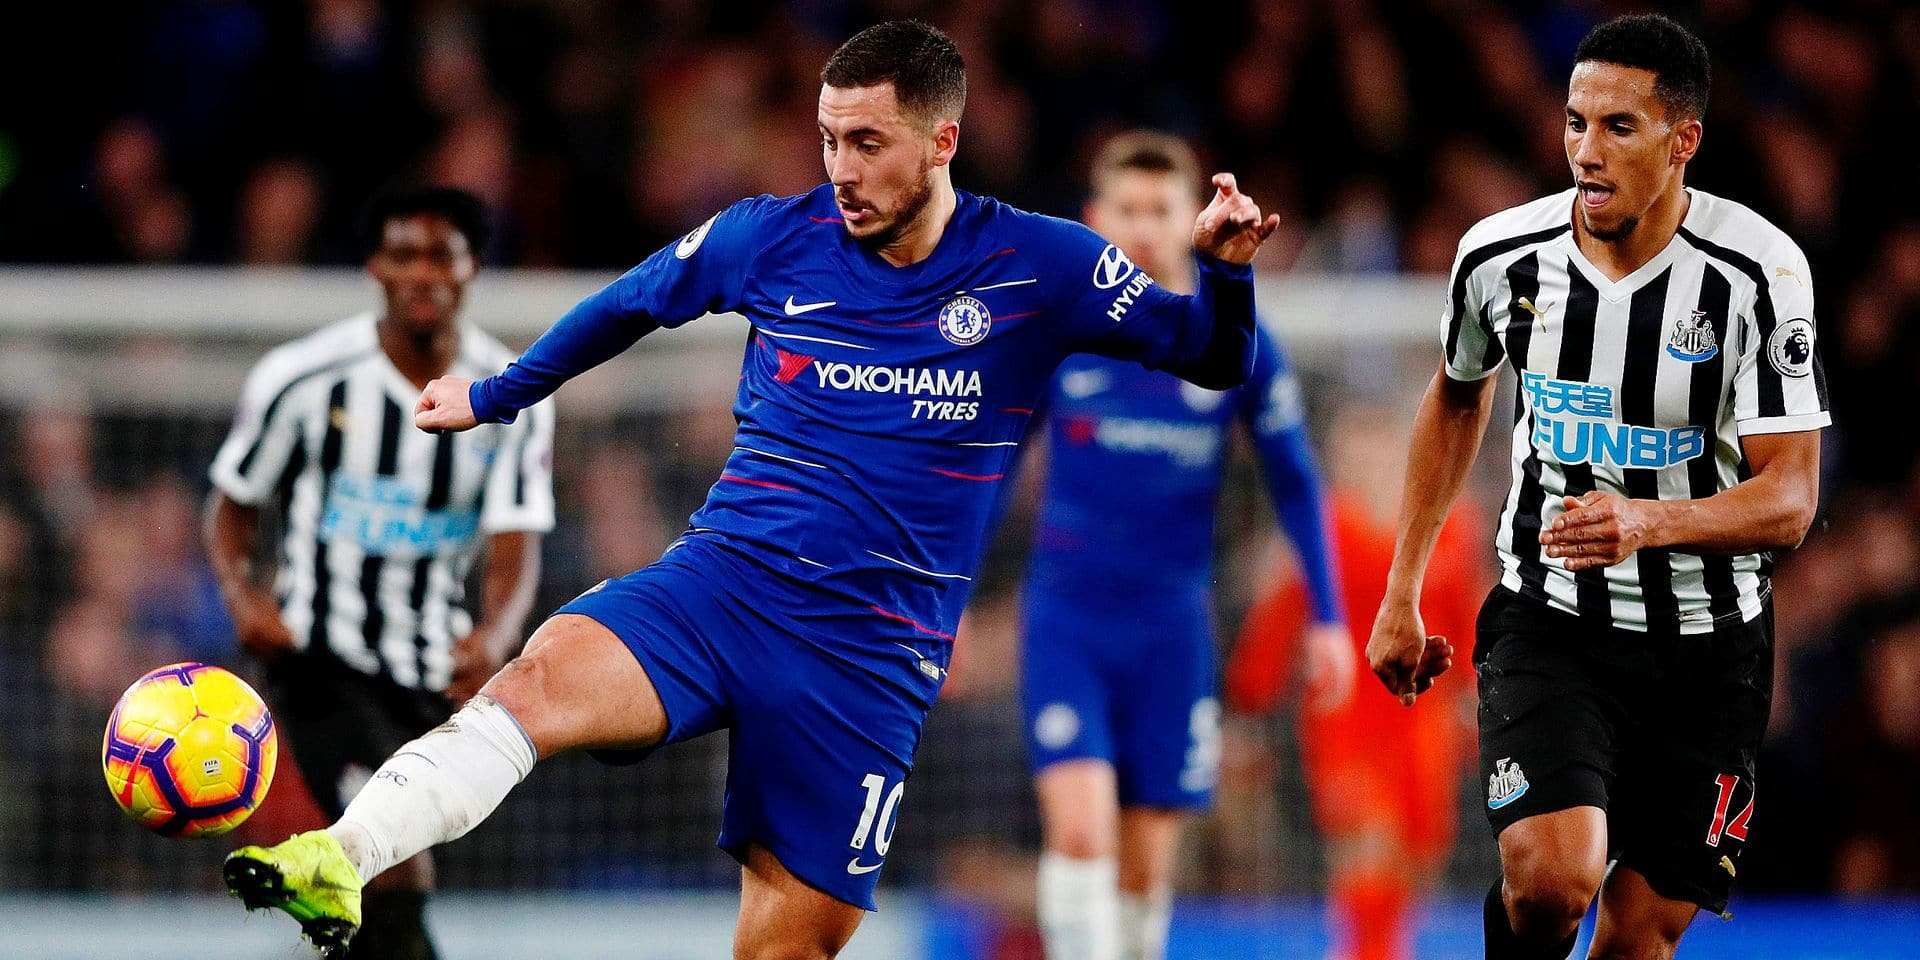 Chelsea's Belgian midfielder Eden Hazard (L) controls the ball during the English Premier League football match between Chelsea and Newcastle United at Stamford Bridge in London on January 12, 2019. (Photo by Adrian DENNIS / AFP) / RESTRICTED TO EDITORIAL USE. No use with unauthorized audio, video, data, fixture lists, club/league logos or 'live' services. Online in-match use limited to 120 images. An additional 40 images may be used in extra time. No video emulation. Social media in-match use limited to 120 images. An additional 40 images may be used in extra time. No use in betting publications, games or single club/league/player publications. /